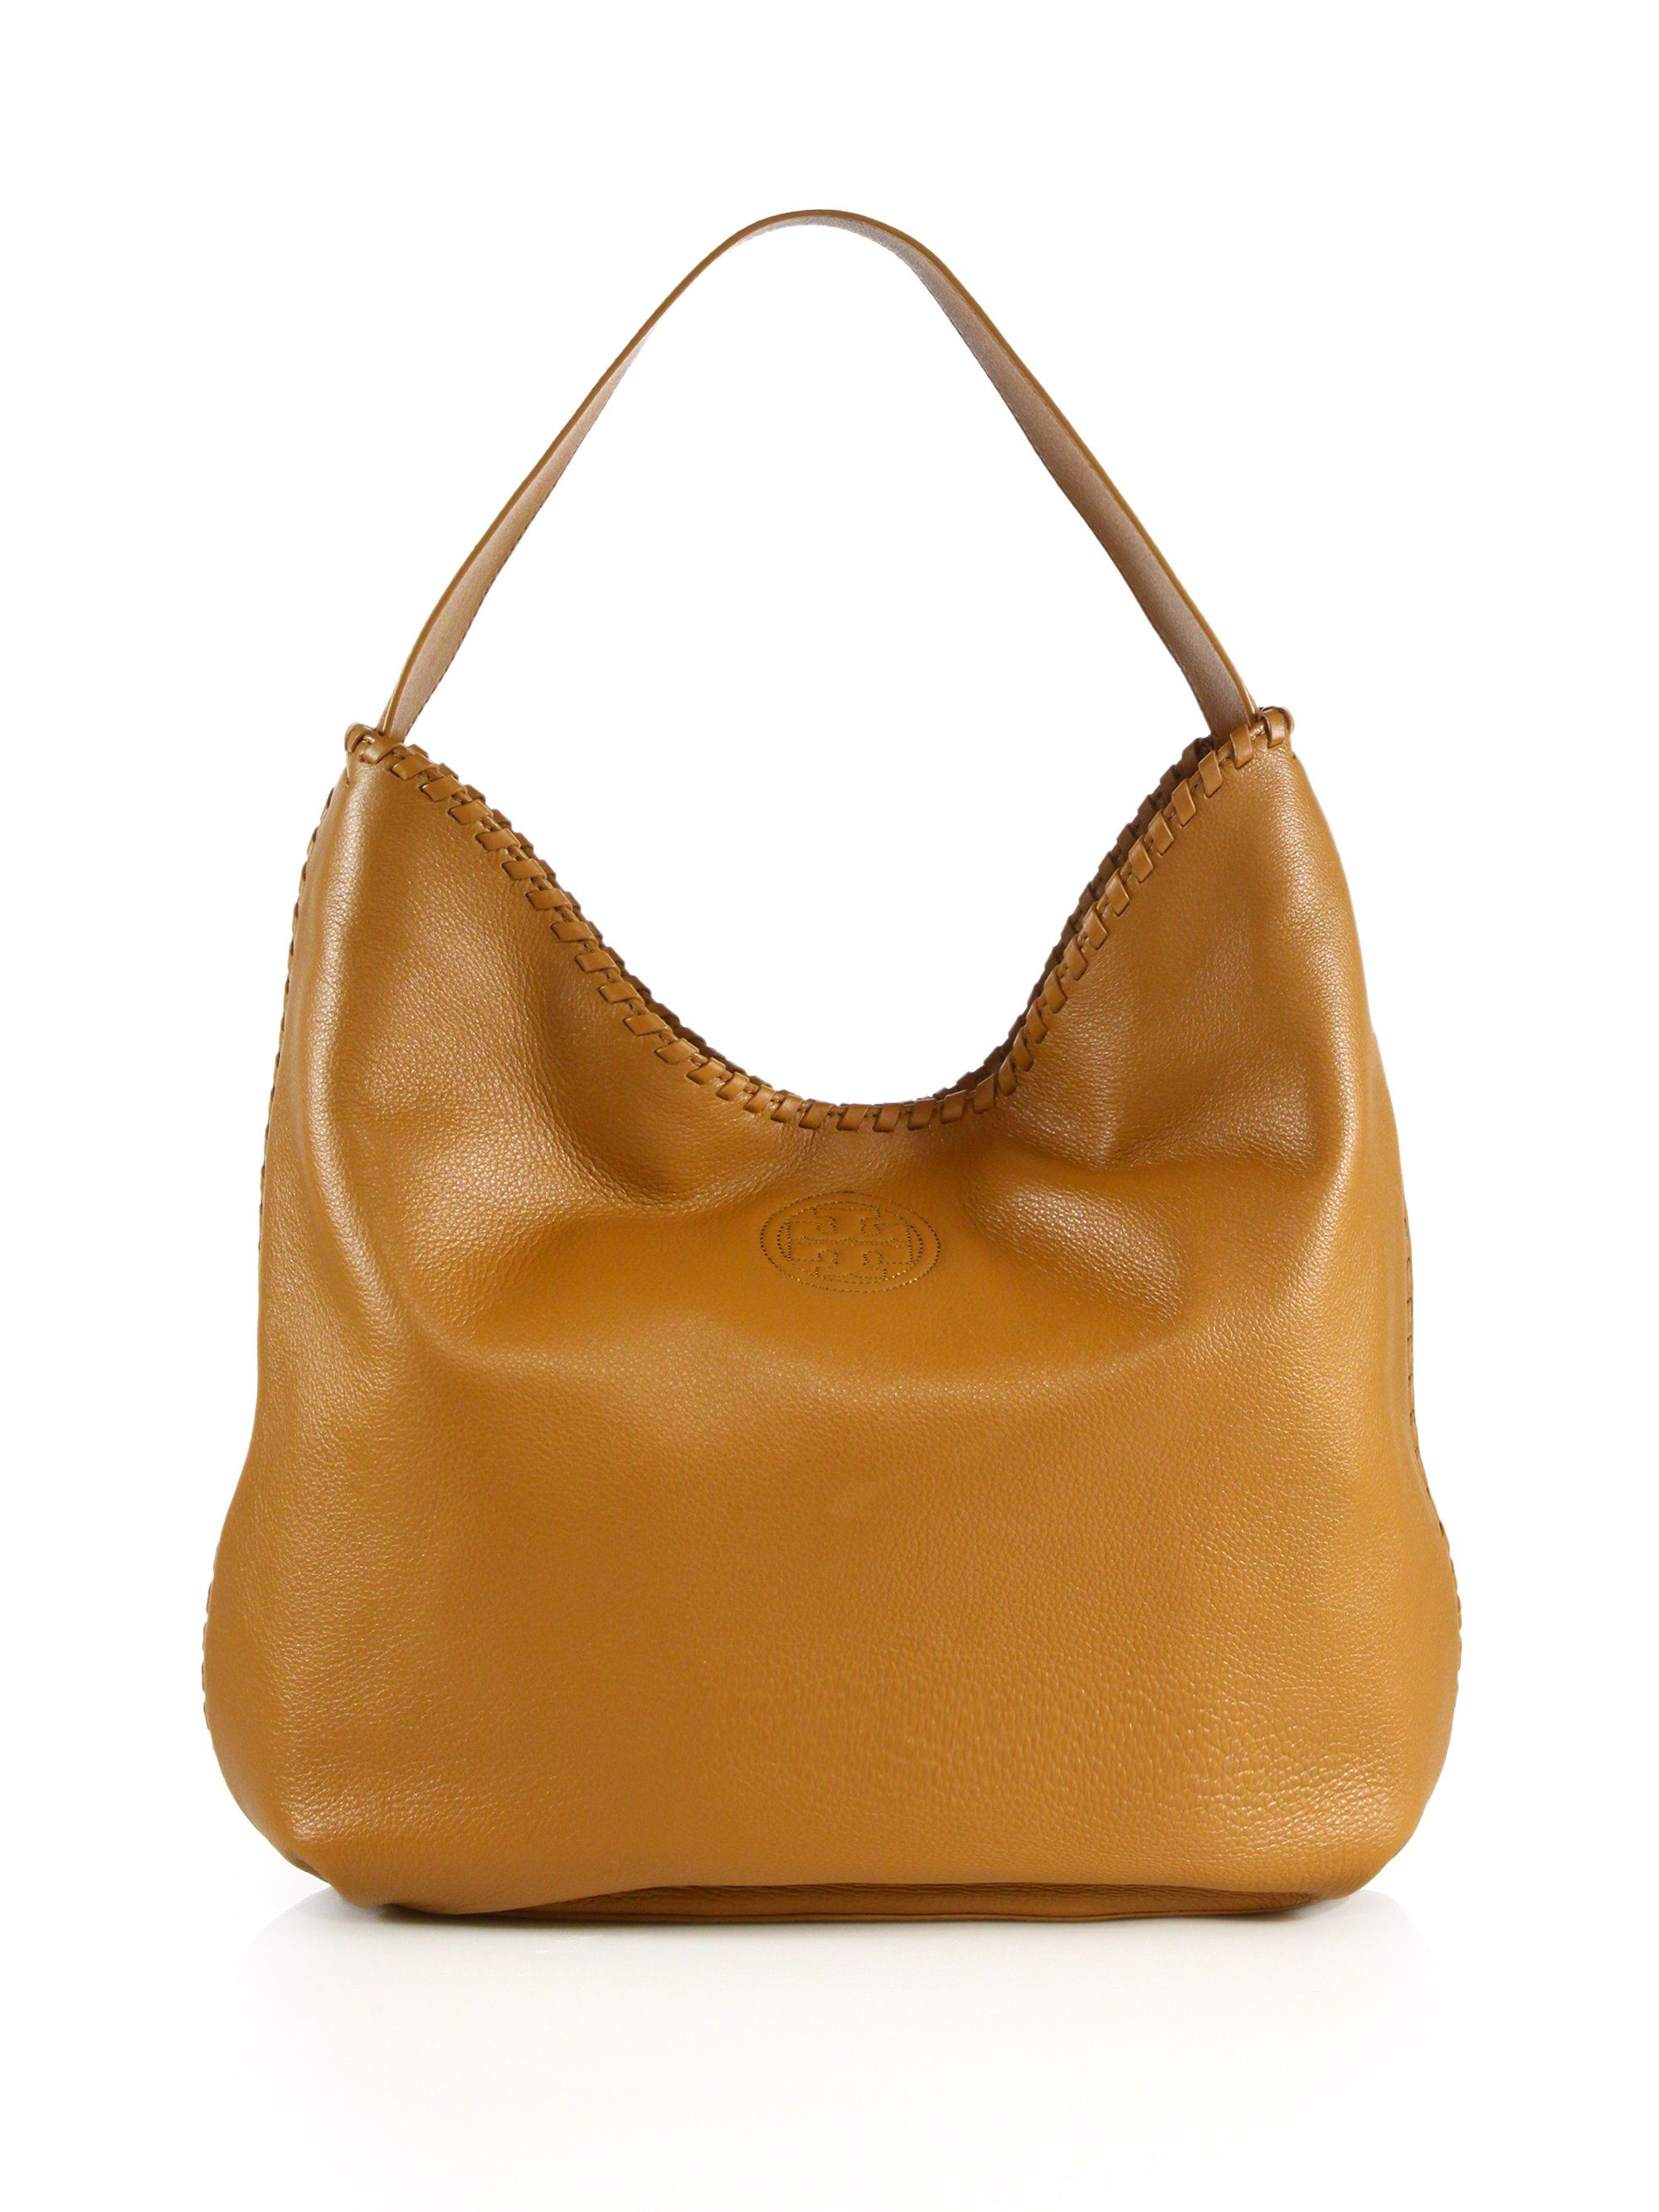 bdcf5b5cf282 Tory burch Marion Whipstitched Leather Hobo Bag in Brown (bark ...